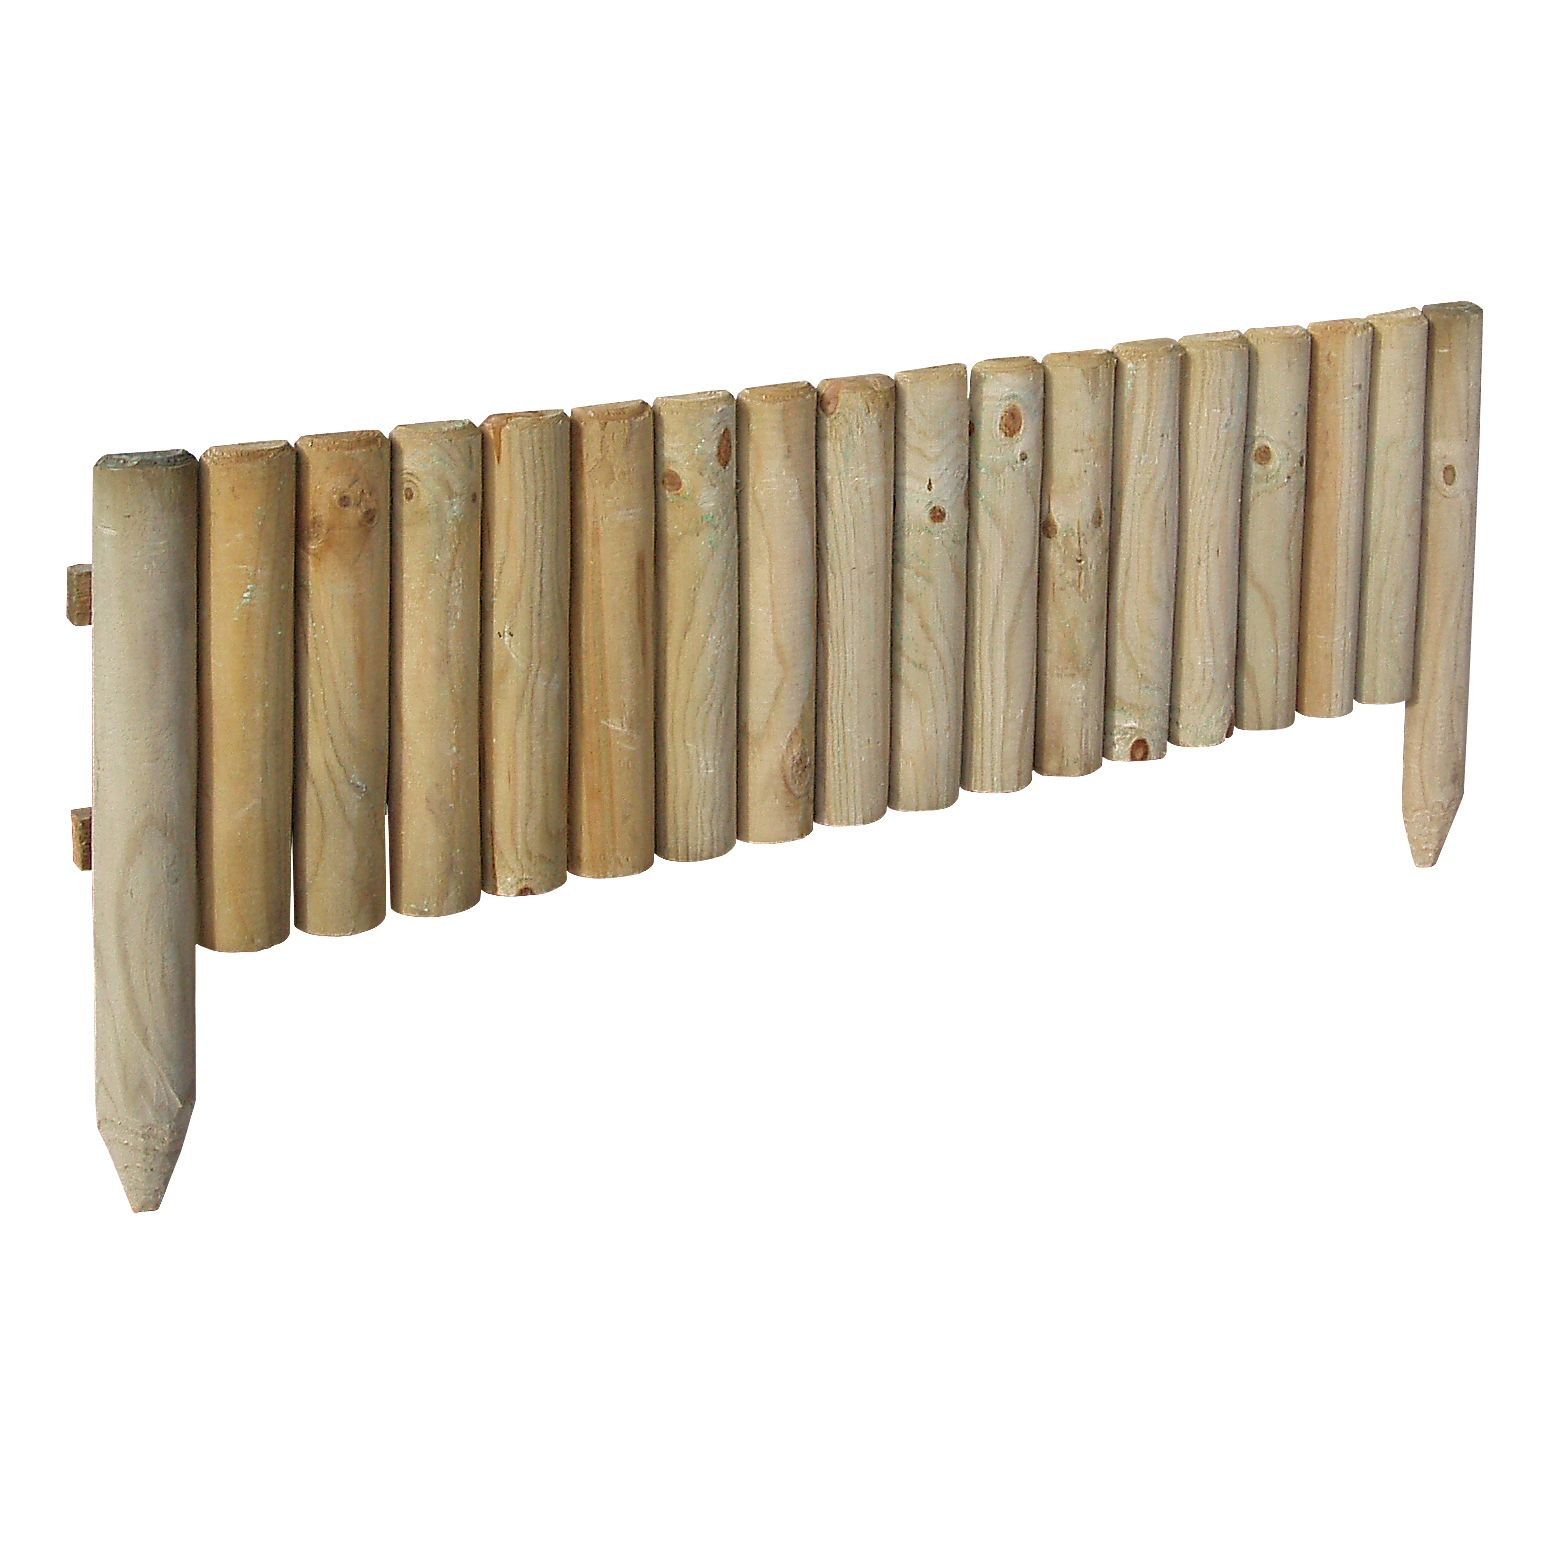 Grange Green Timber Border Edging Pack Of 1 Departments